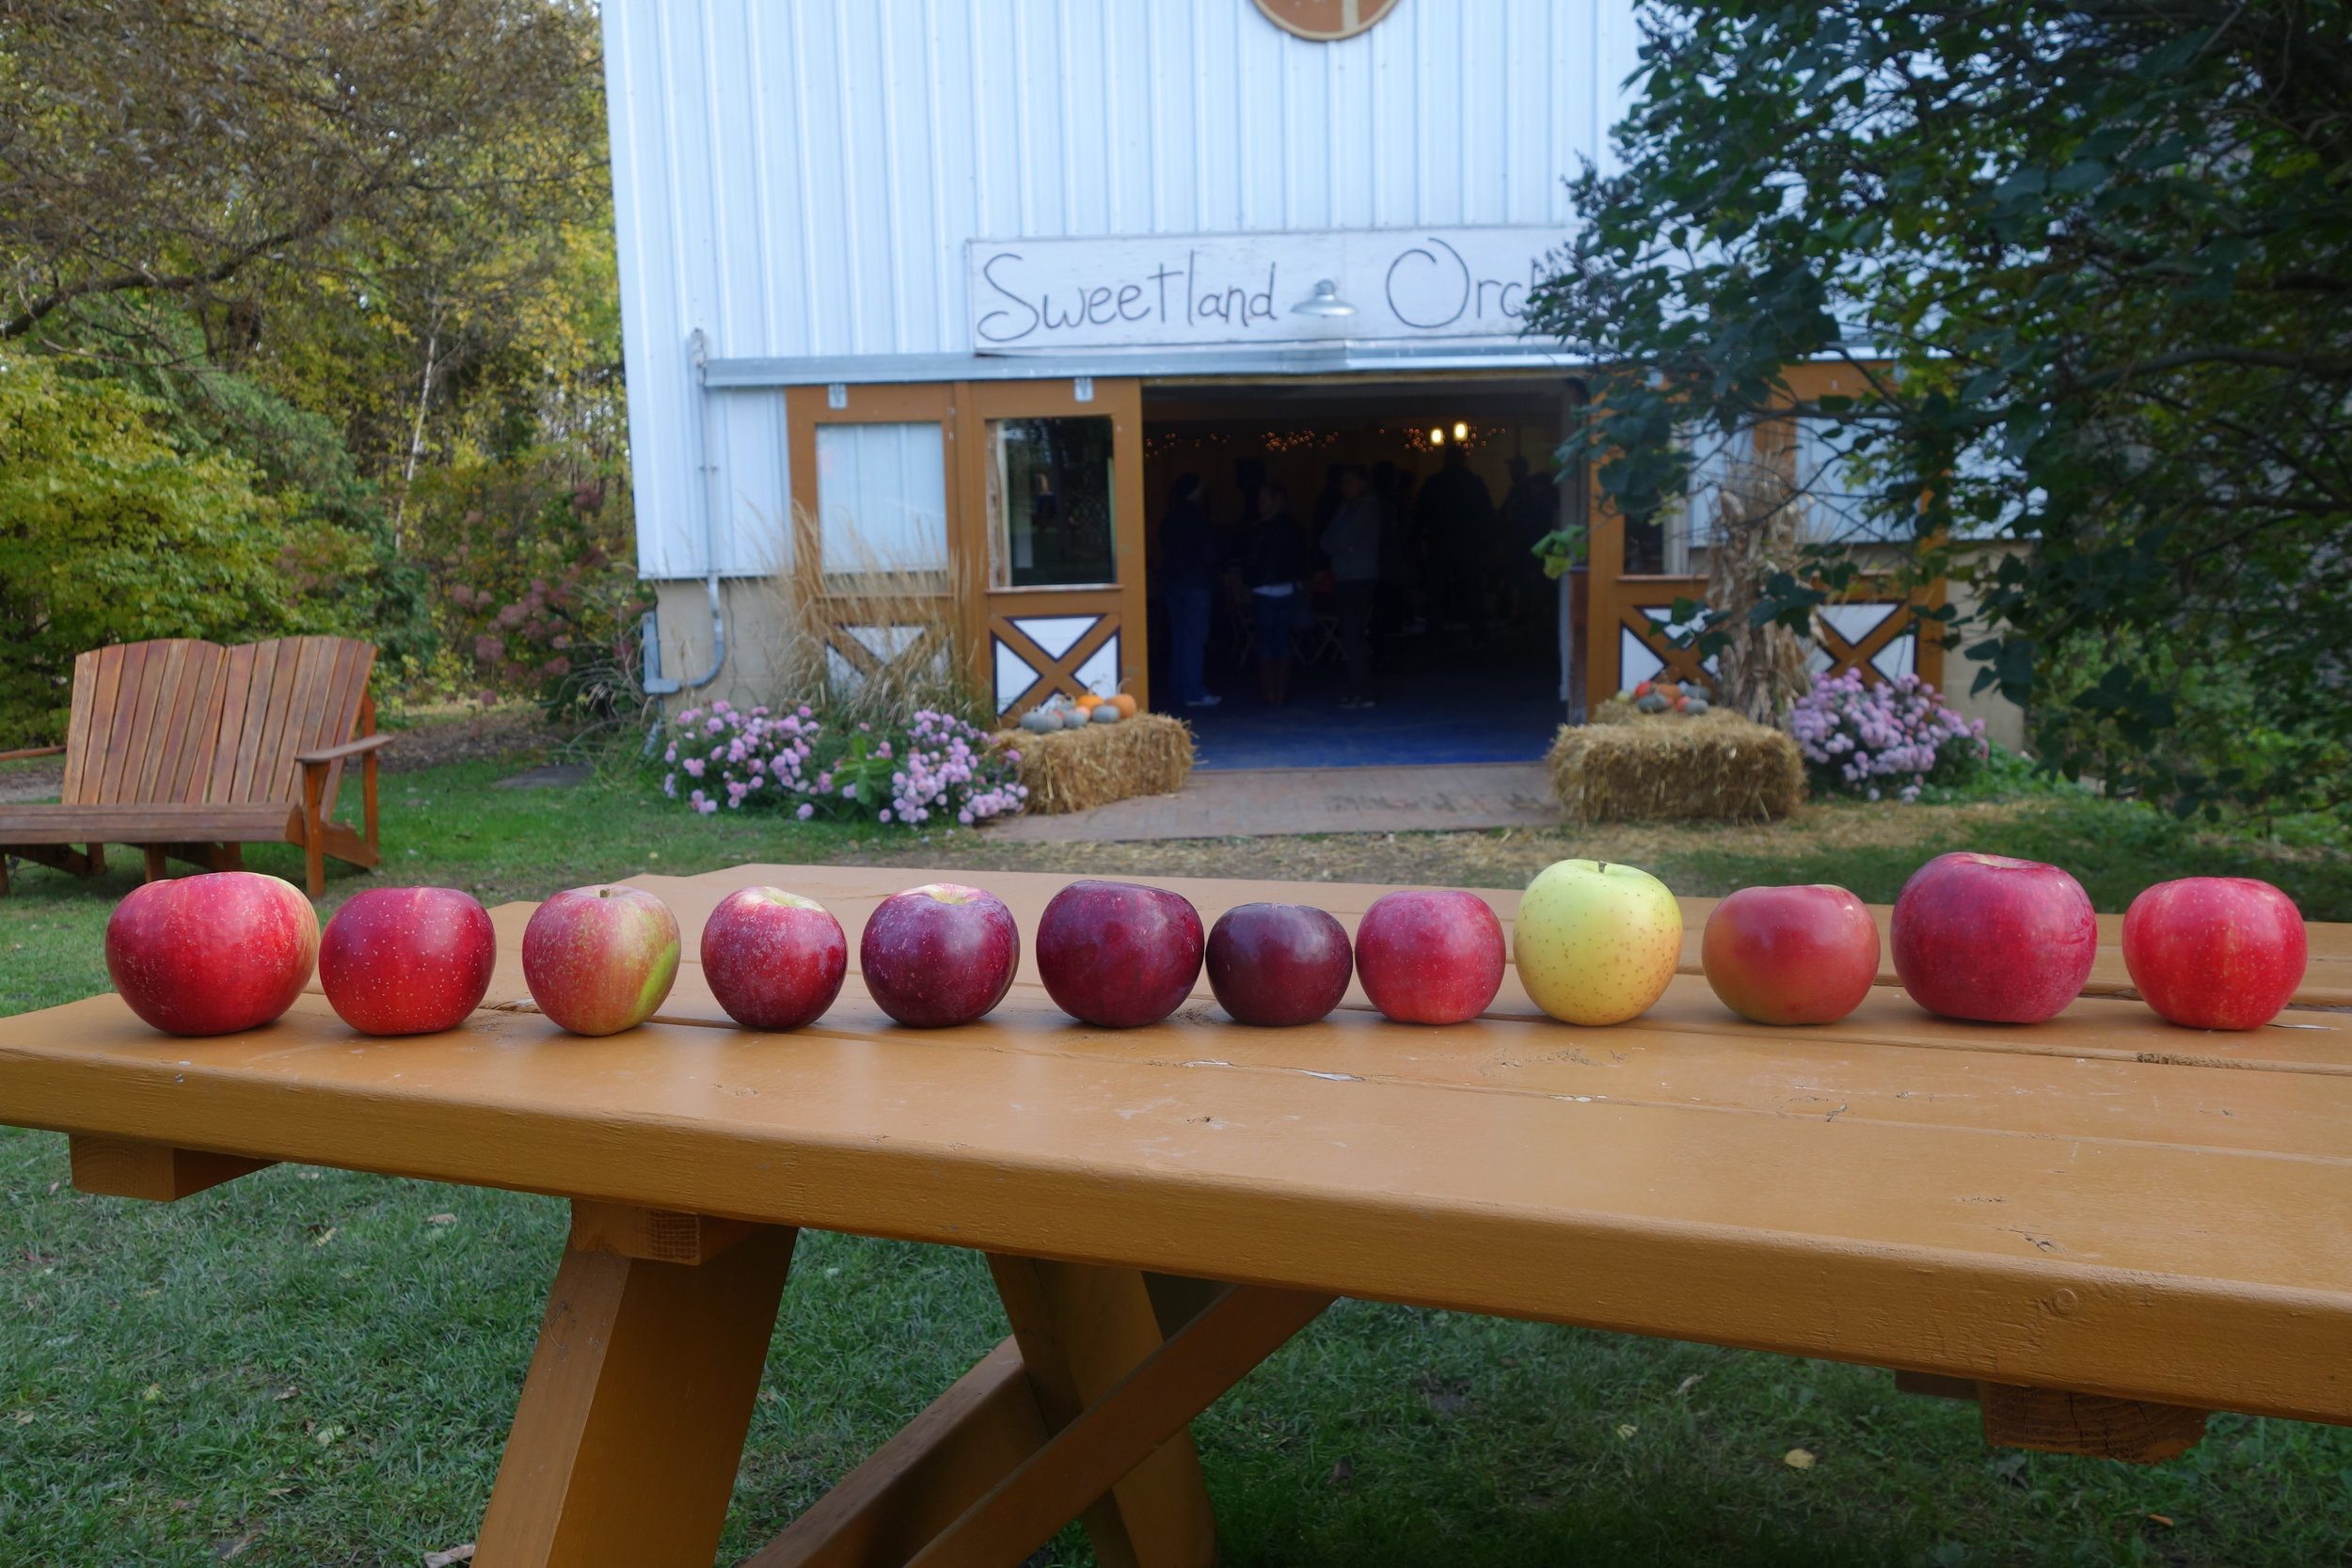 This weekend's apples: Prairie Spy, Haralson, Regent, Liberty, Macoun, Cortland, Ruby Jon, SnowSweet, Honeygold, Connell Red/Fireside, Honeycrisp.